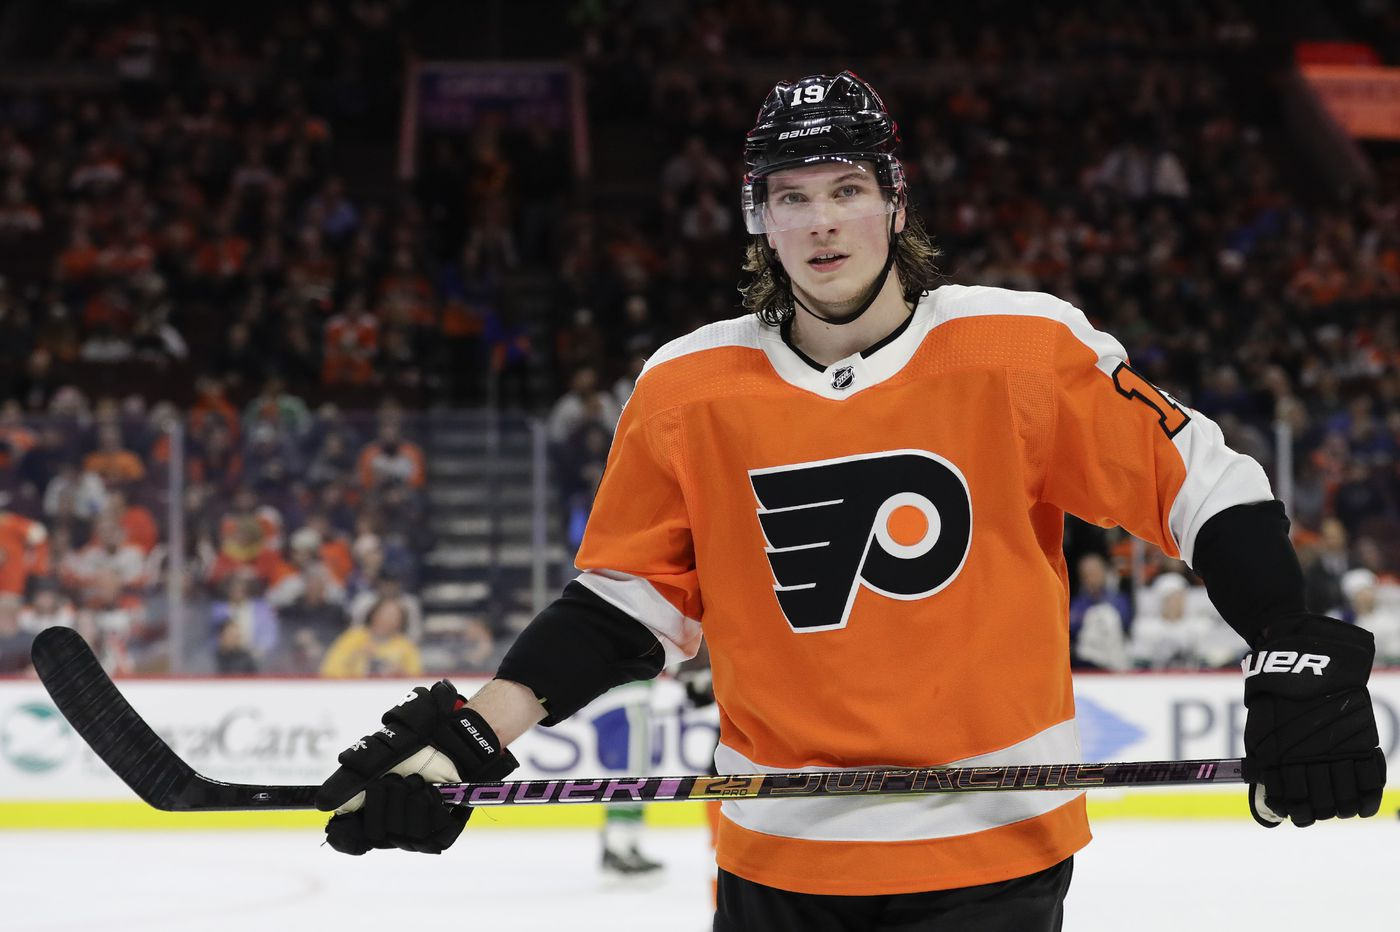 Nolan Patrick on ice for Flyers at practice; says he expects to play this season